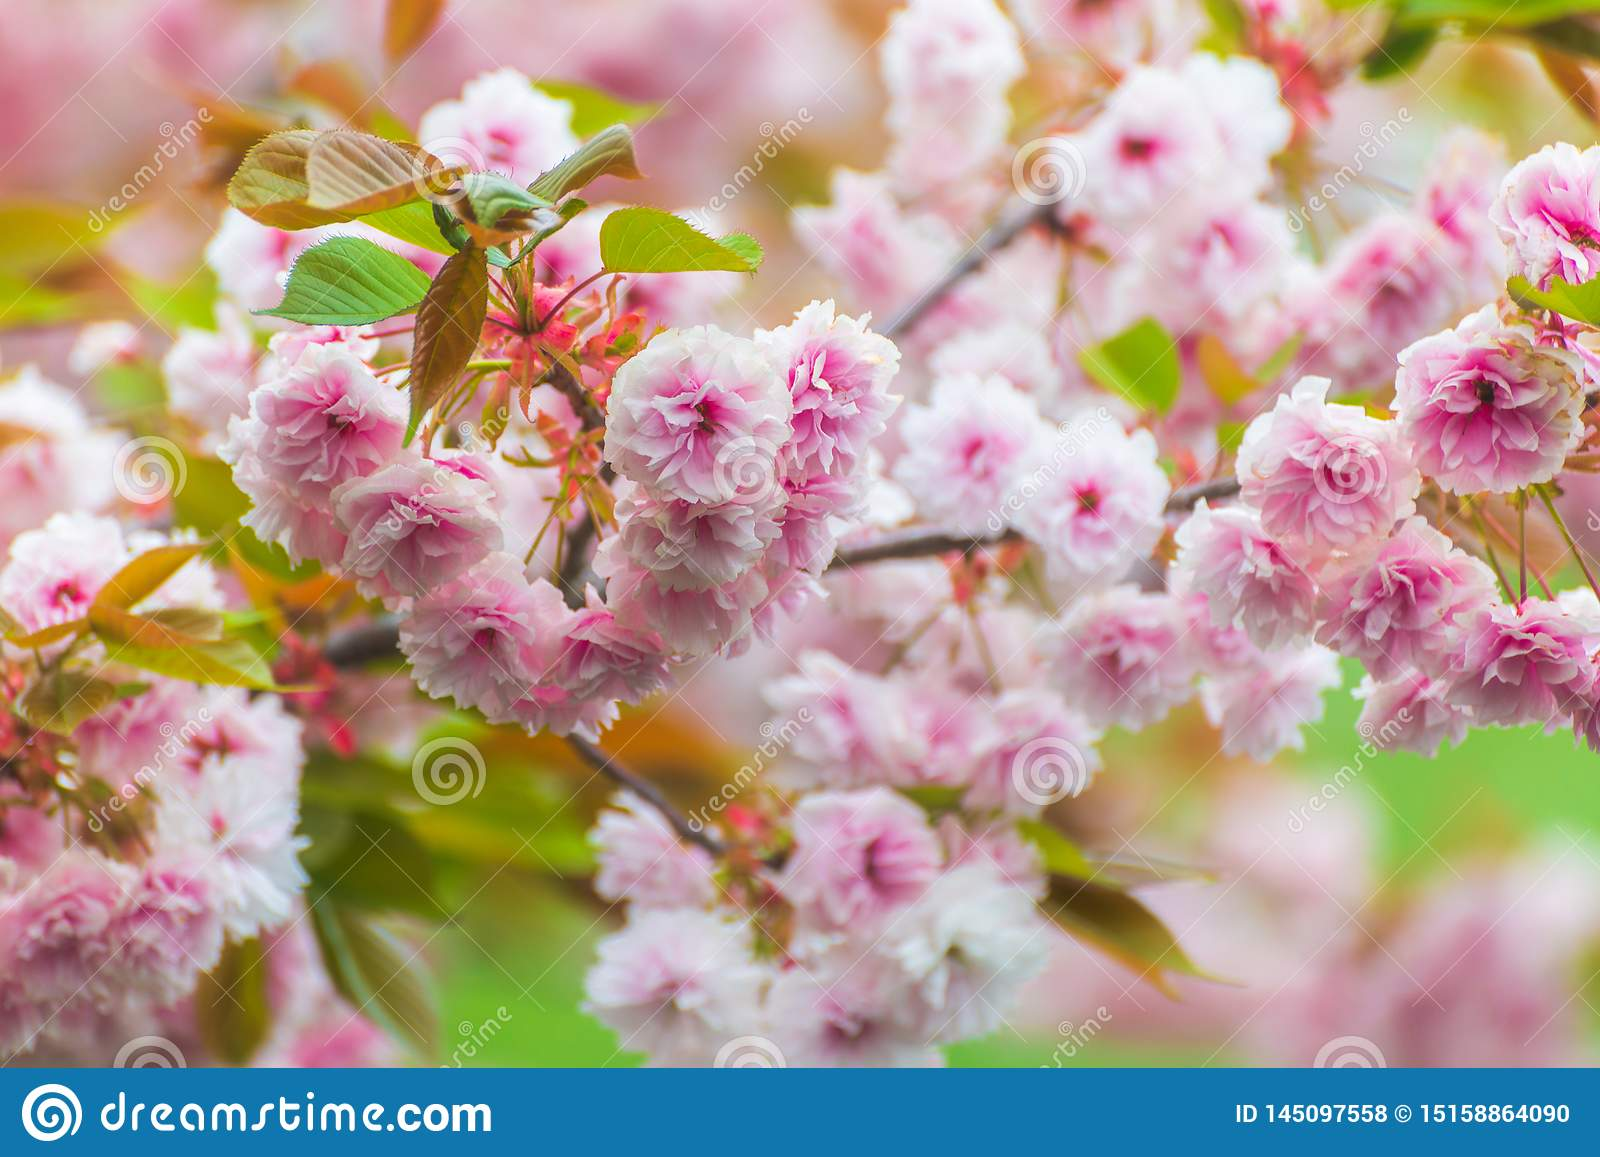 Warmly blooming pink cherry blossoms